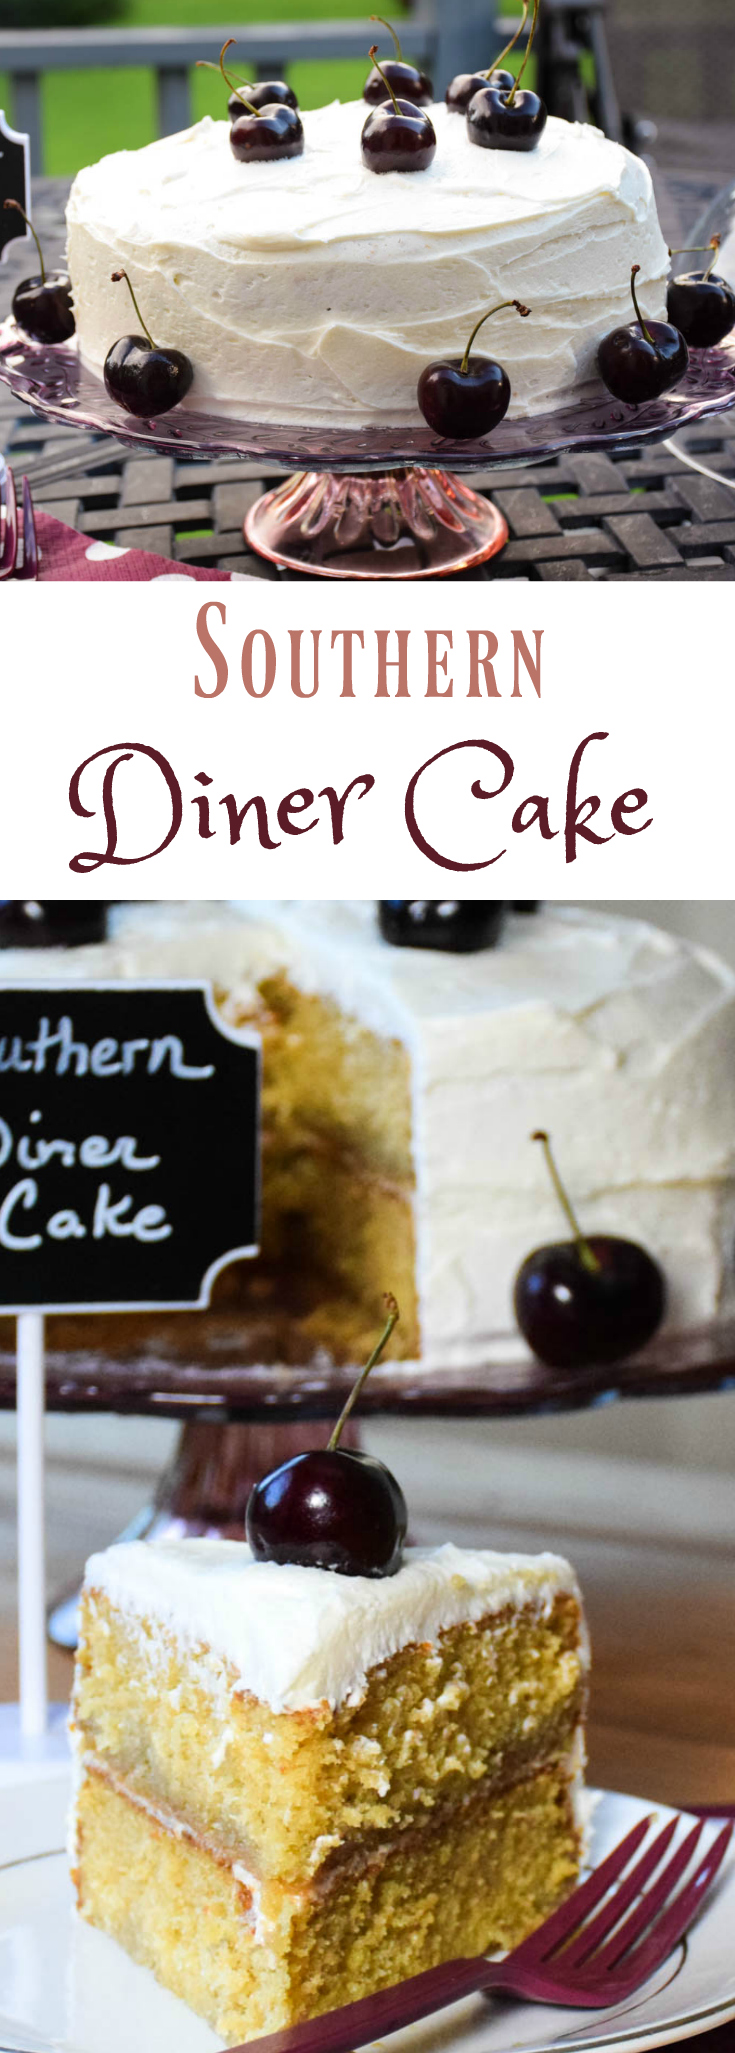 Southern Diner Cake